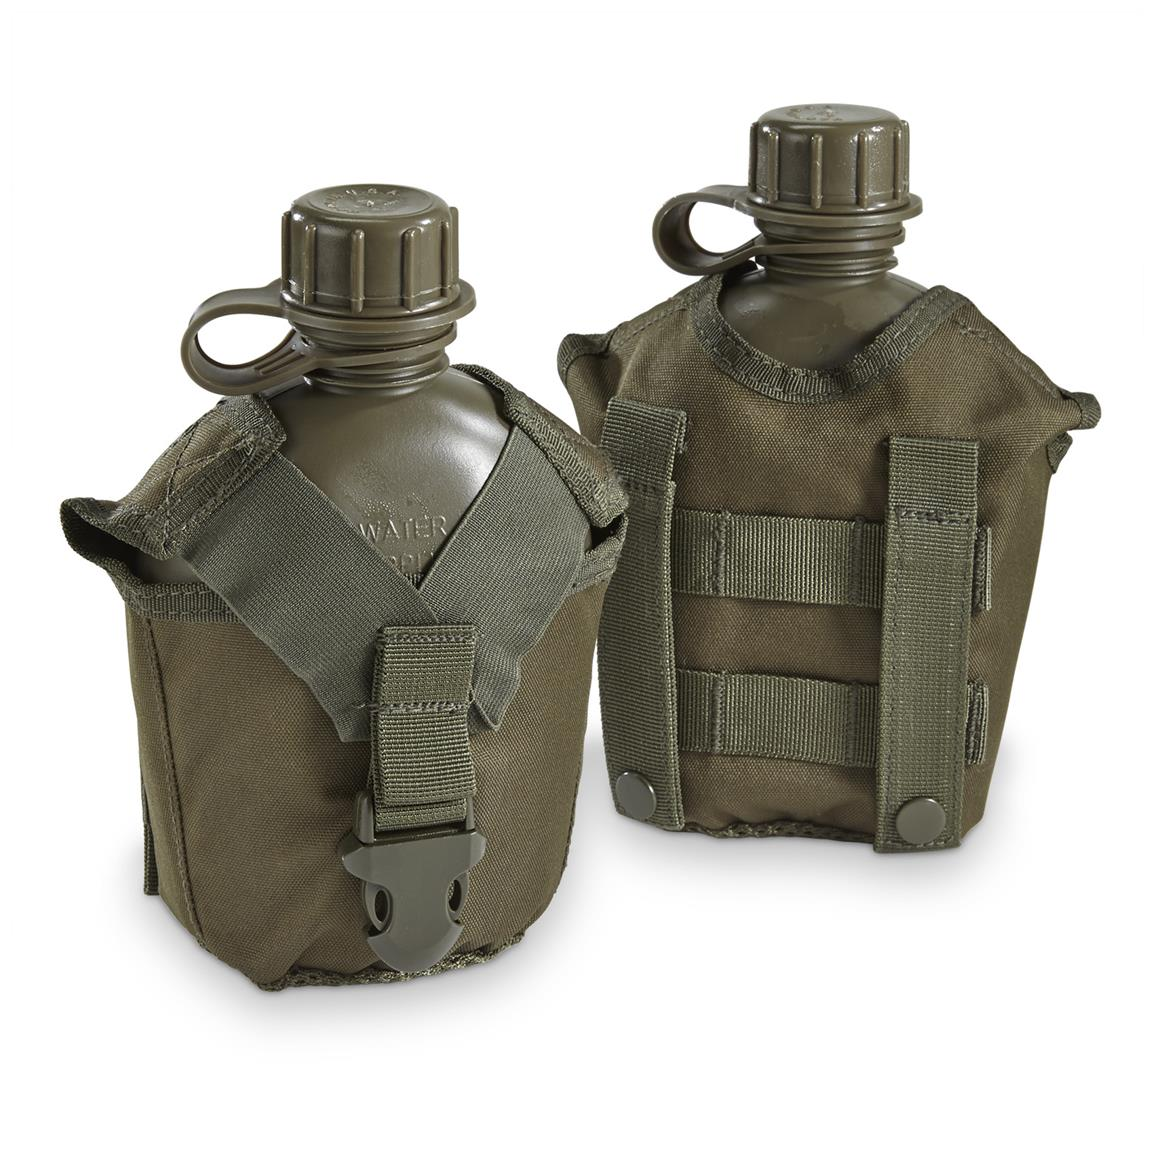 Red Rock Outdoor Gear Canteen with MOLLE Cover, 2 Pack, Olive Drab